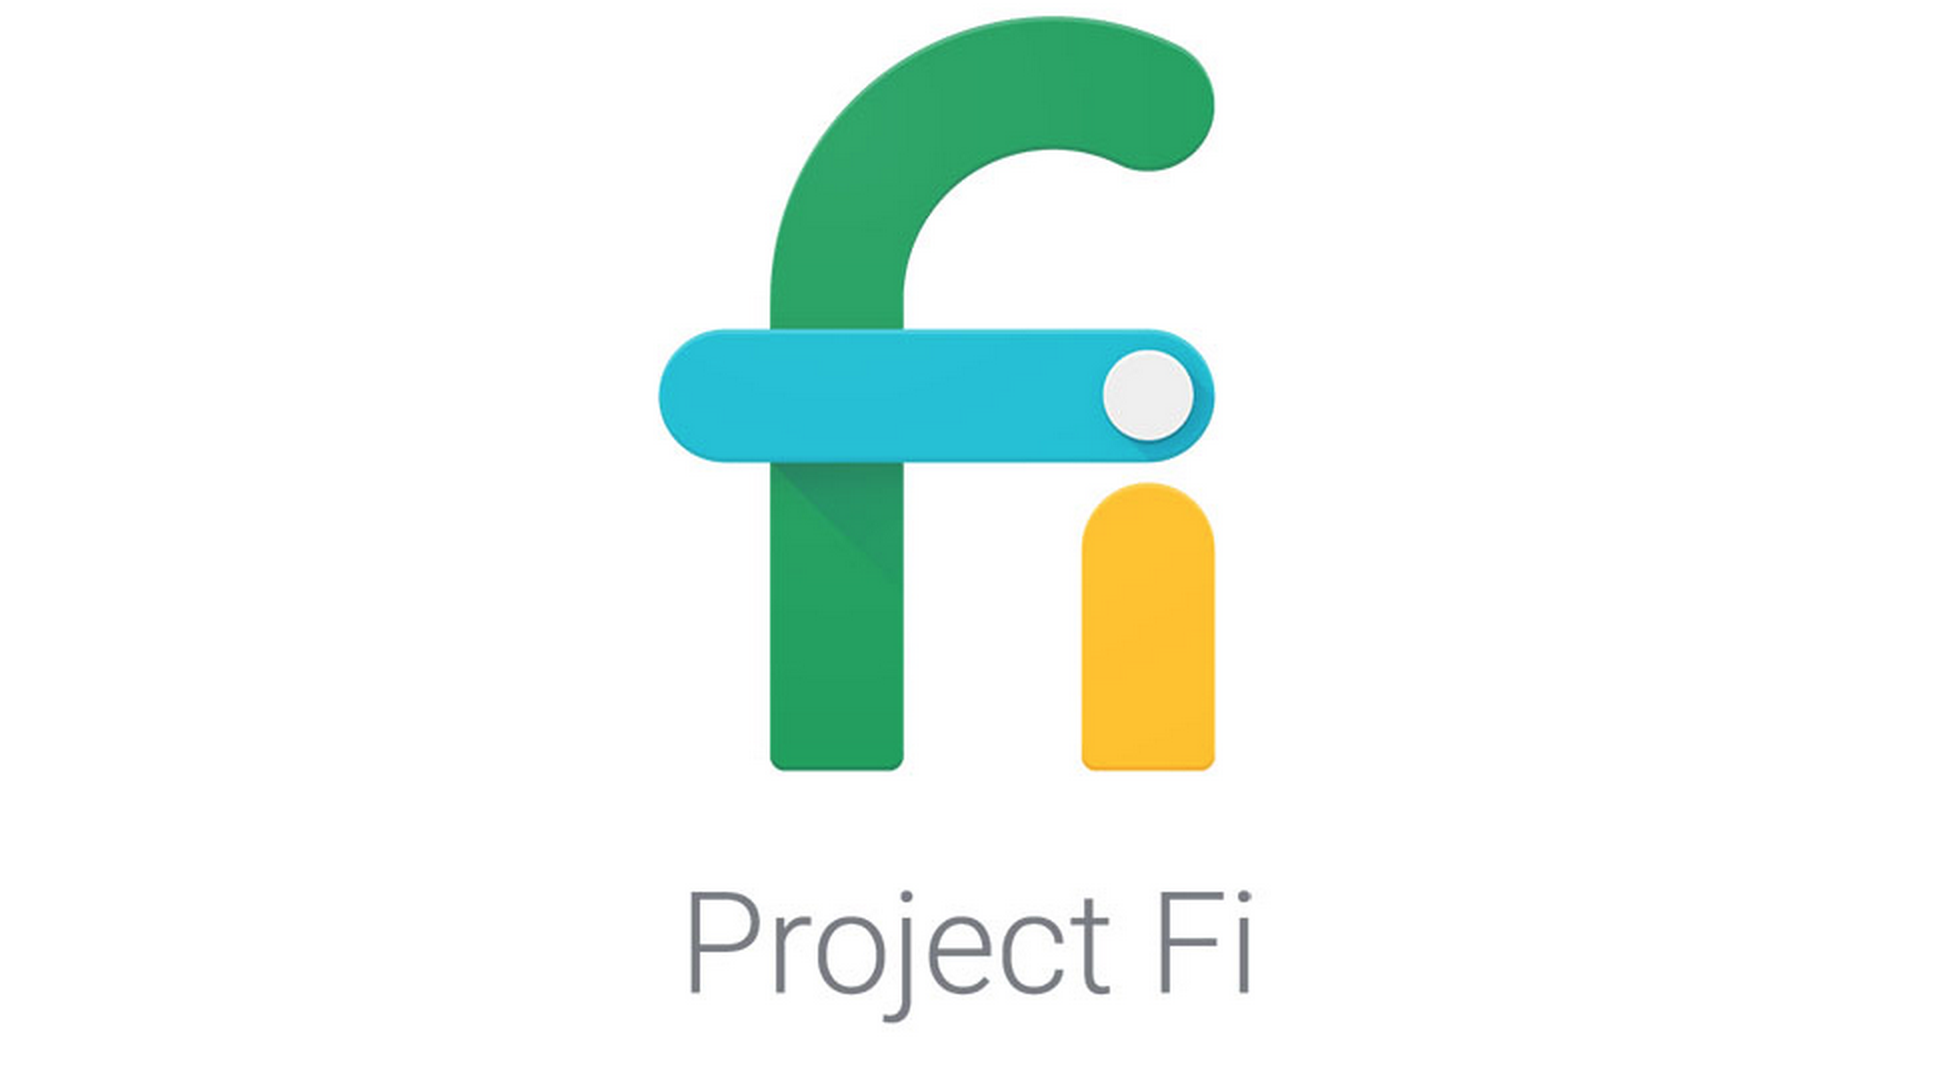 One Week with Google's Project Fi